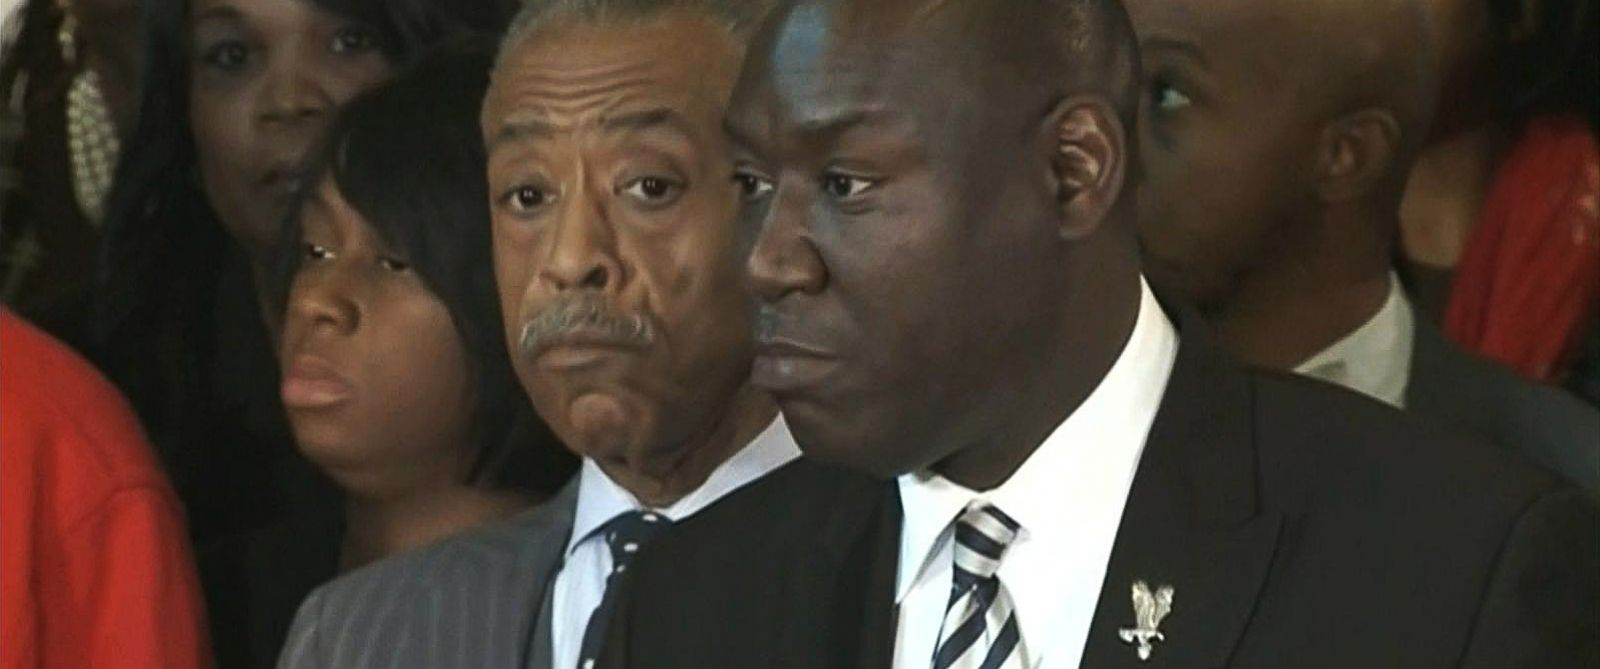 PHOTO: The lawyer for Michael Browns parents, Benjamin Crump, along with Rev. Al Sharpton, give a press conference on Nov. 25, 2014.